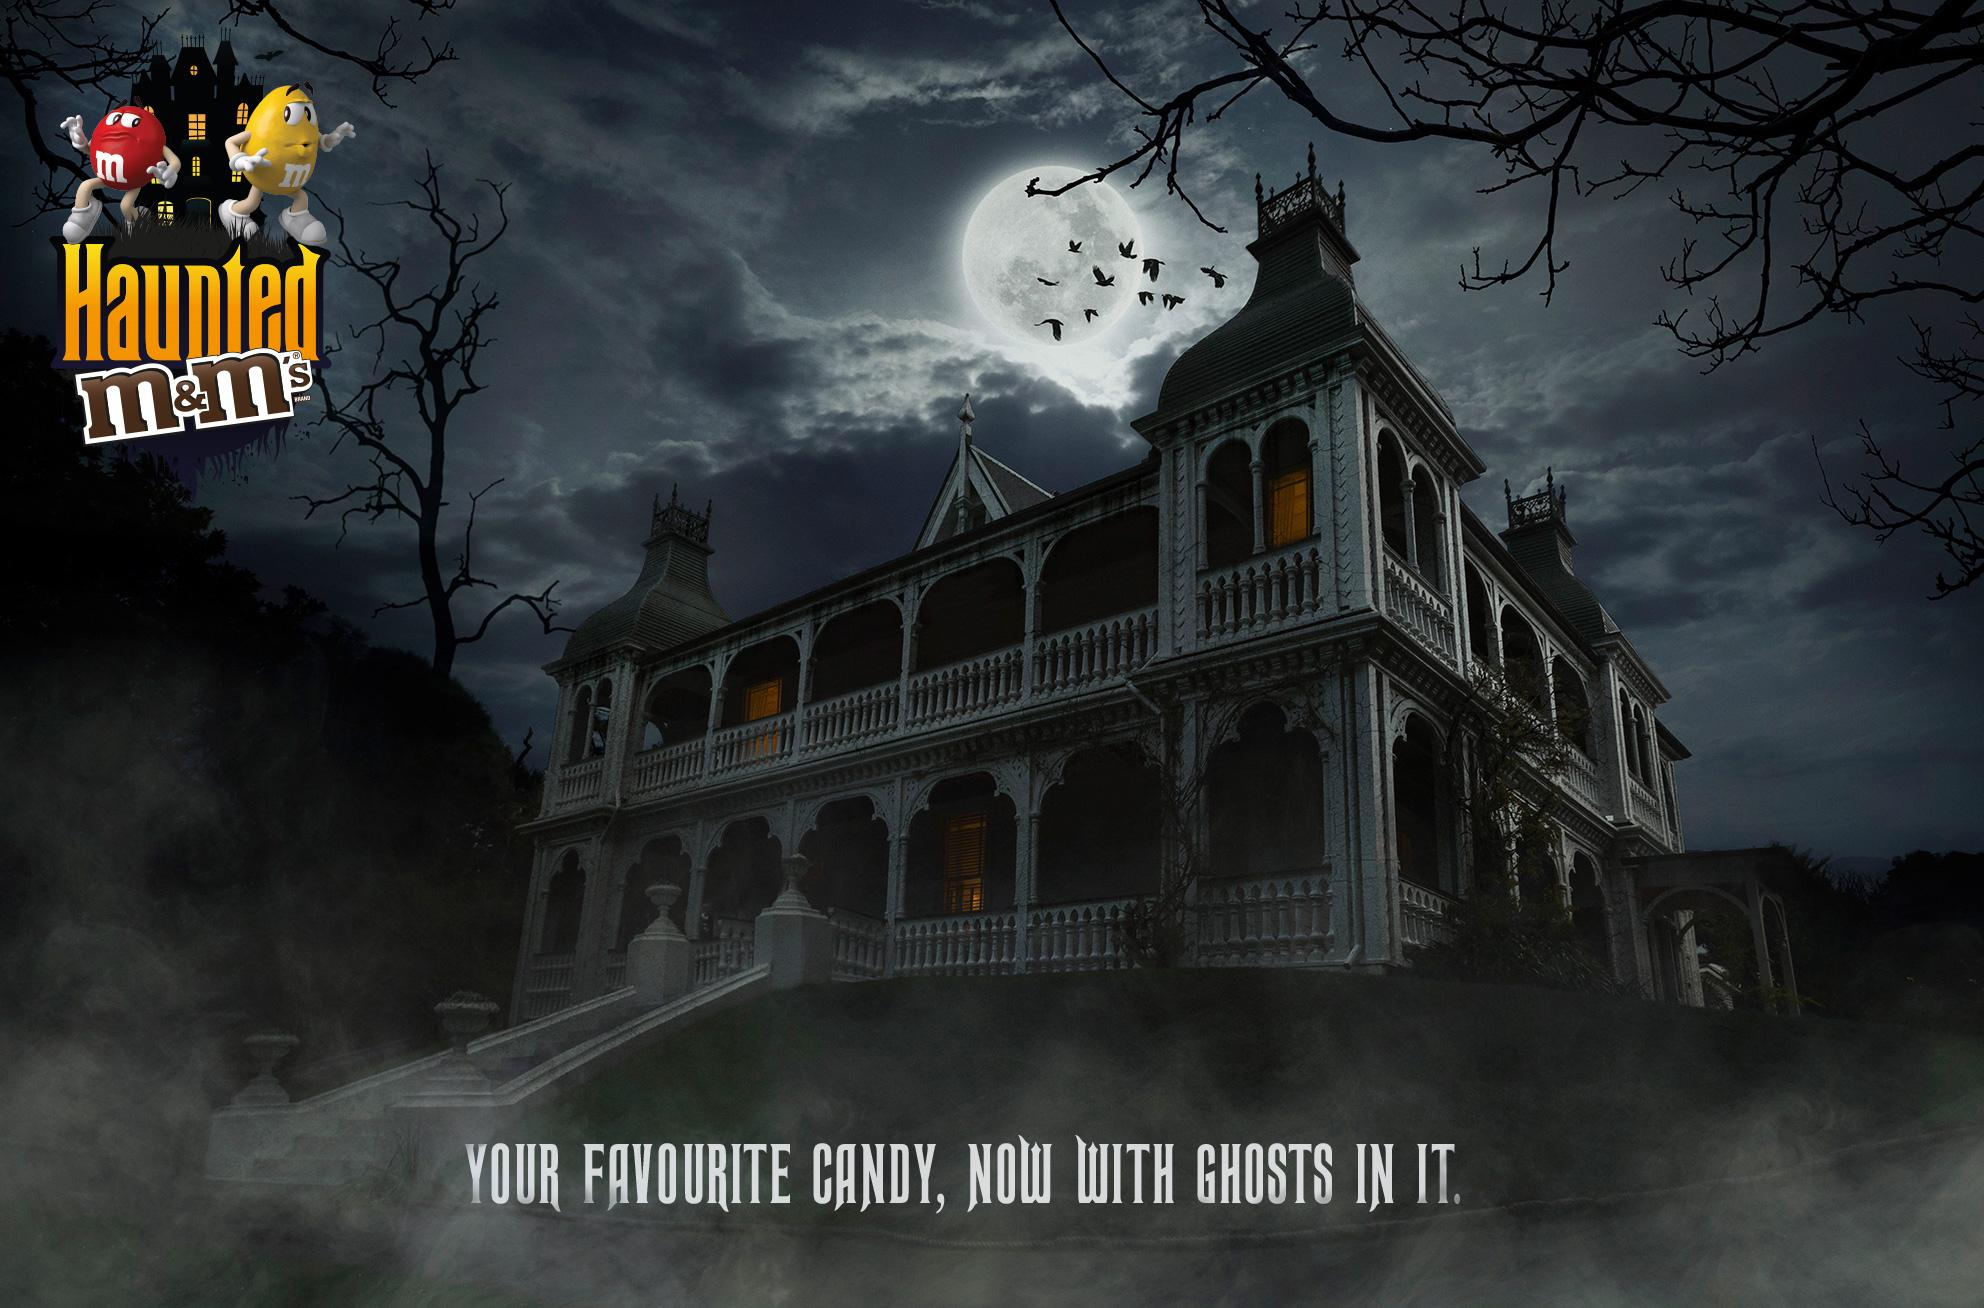 M&M's Direct Ad - Haunted